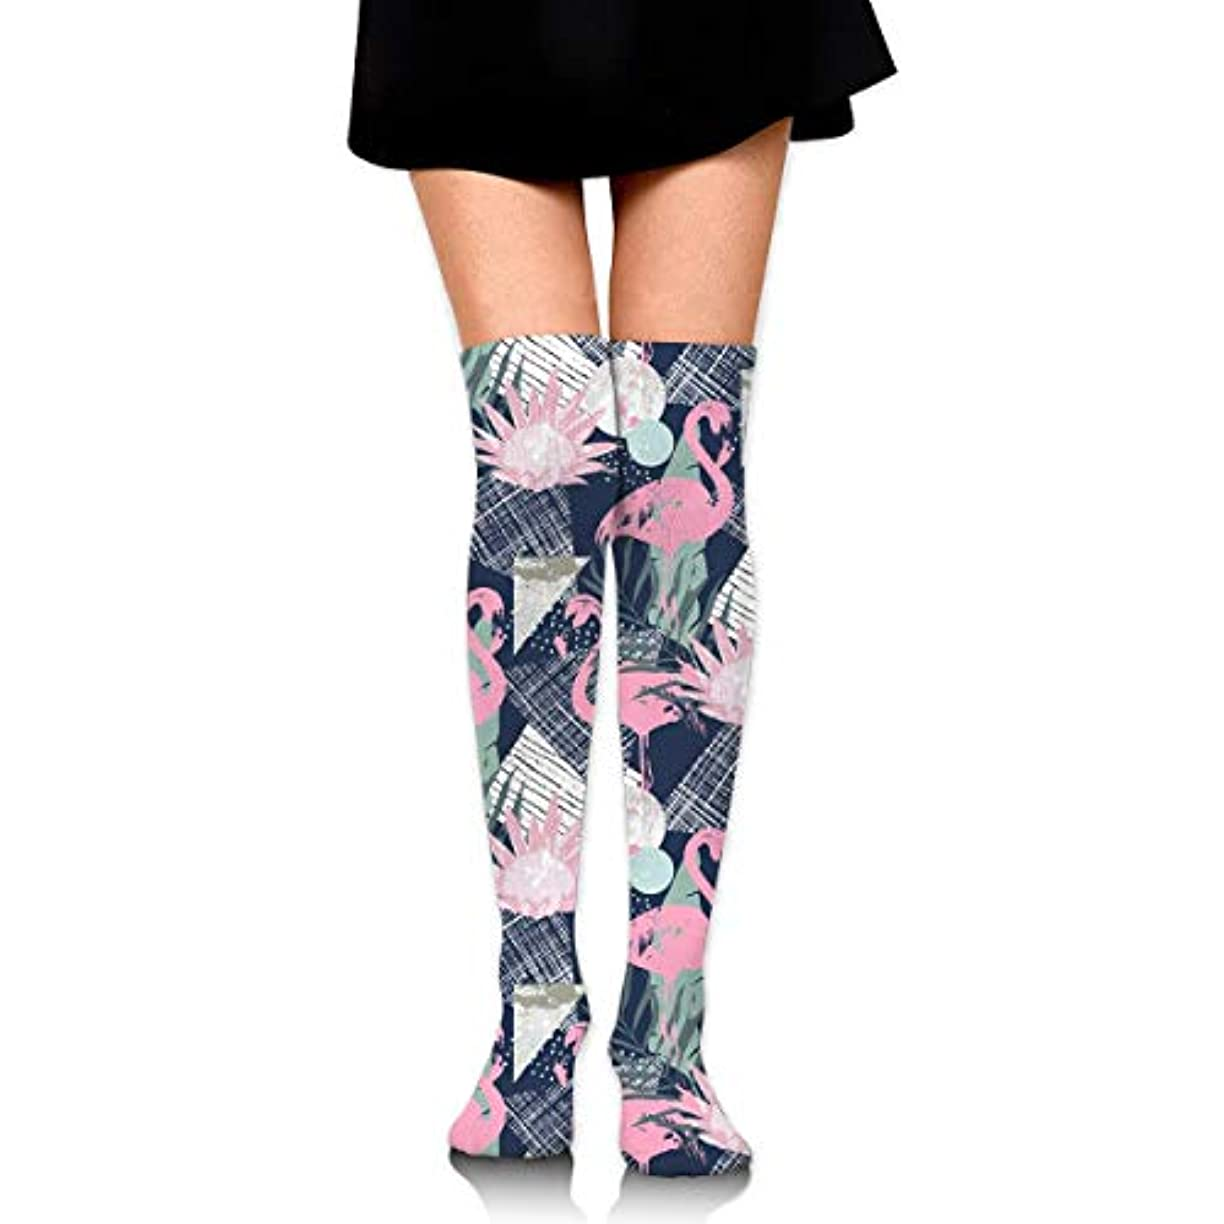 衝撃現代養うMKLOS 通気性 圧縮ソックス Breathable Thigh High Socks Over Exotic Psychedelic Print Compression High Tube Thigh Boot Stockings...